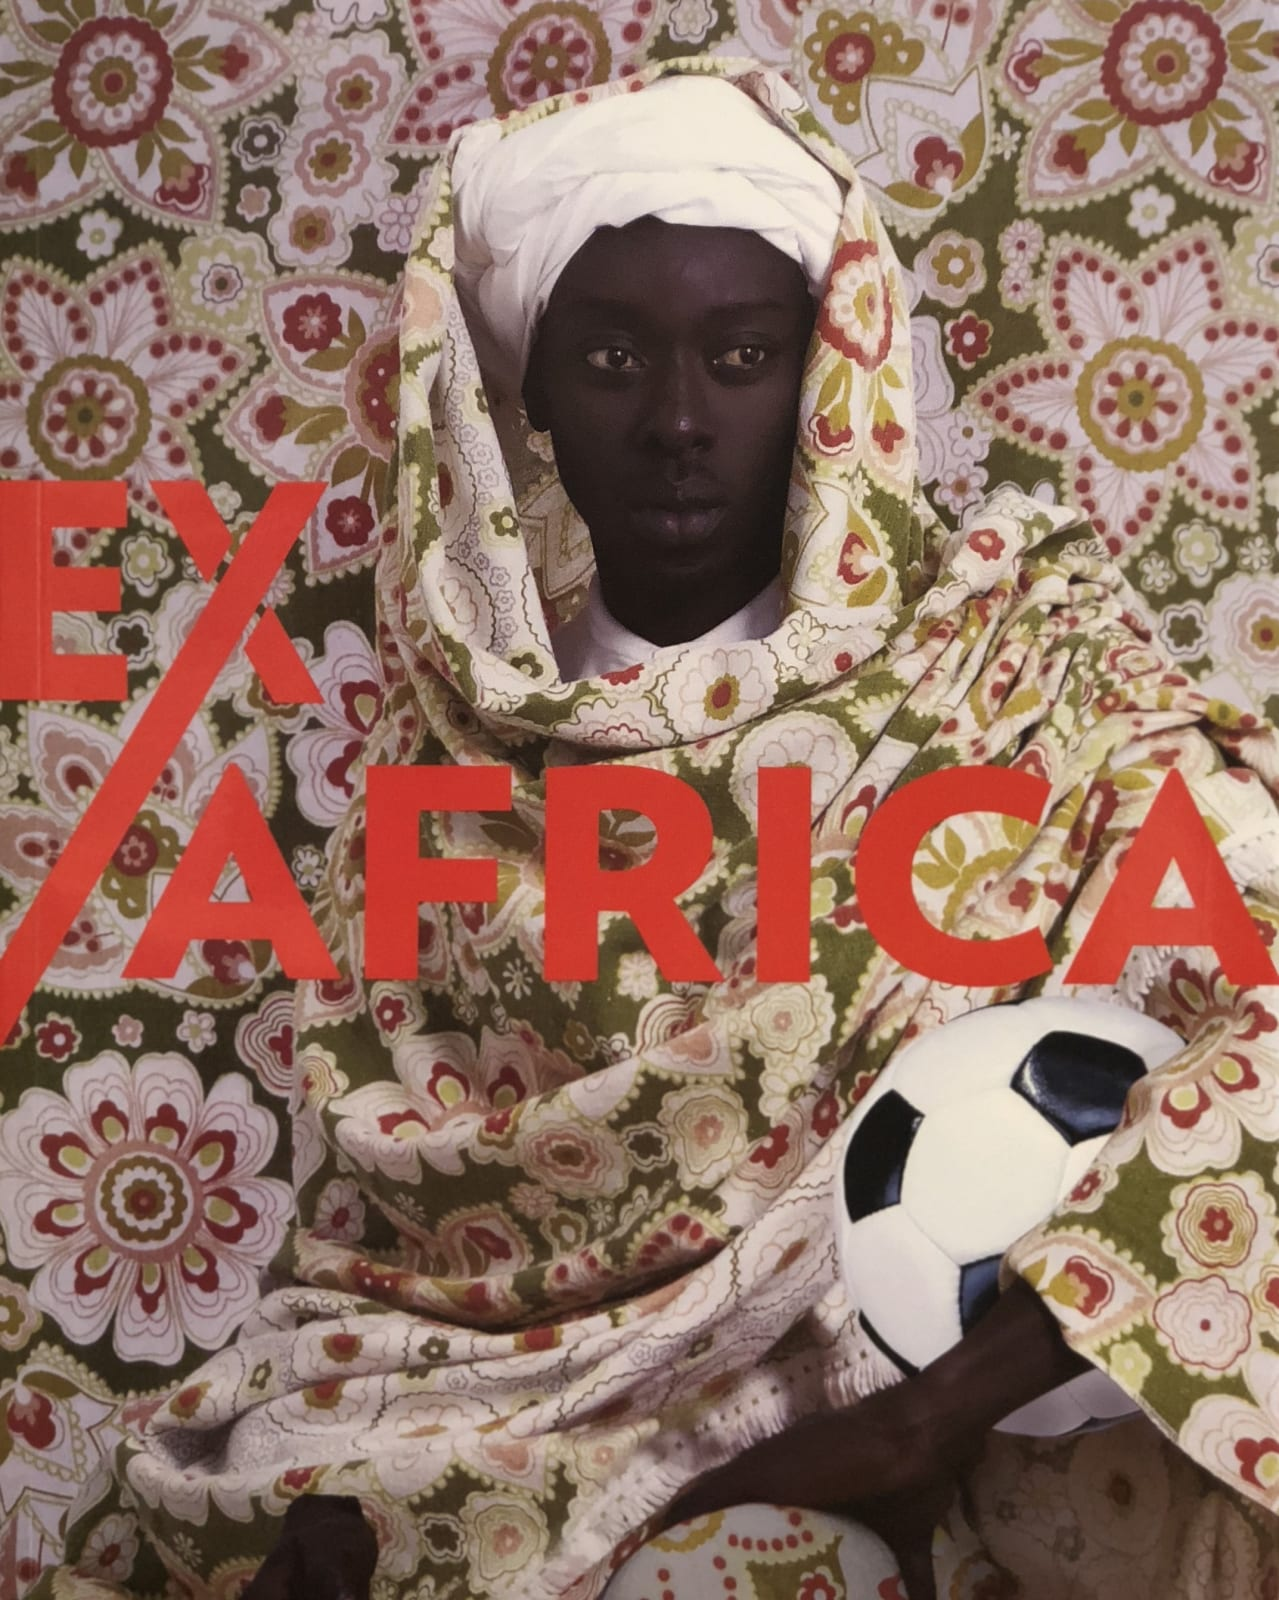 Ex Africa, curated by Alfons Hug Centro Cultural Banco do Brasil